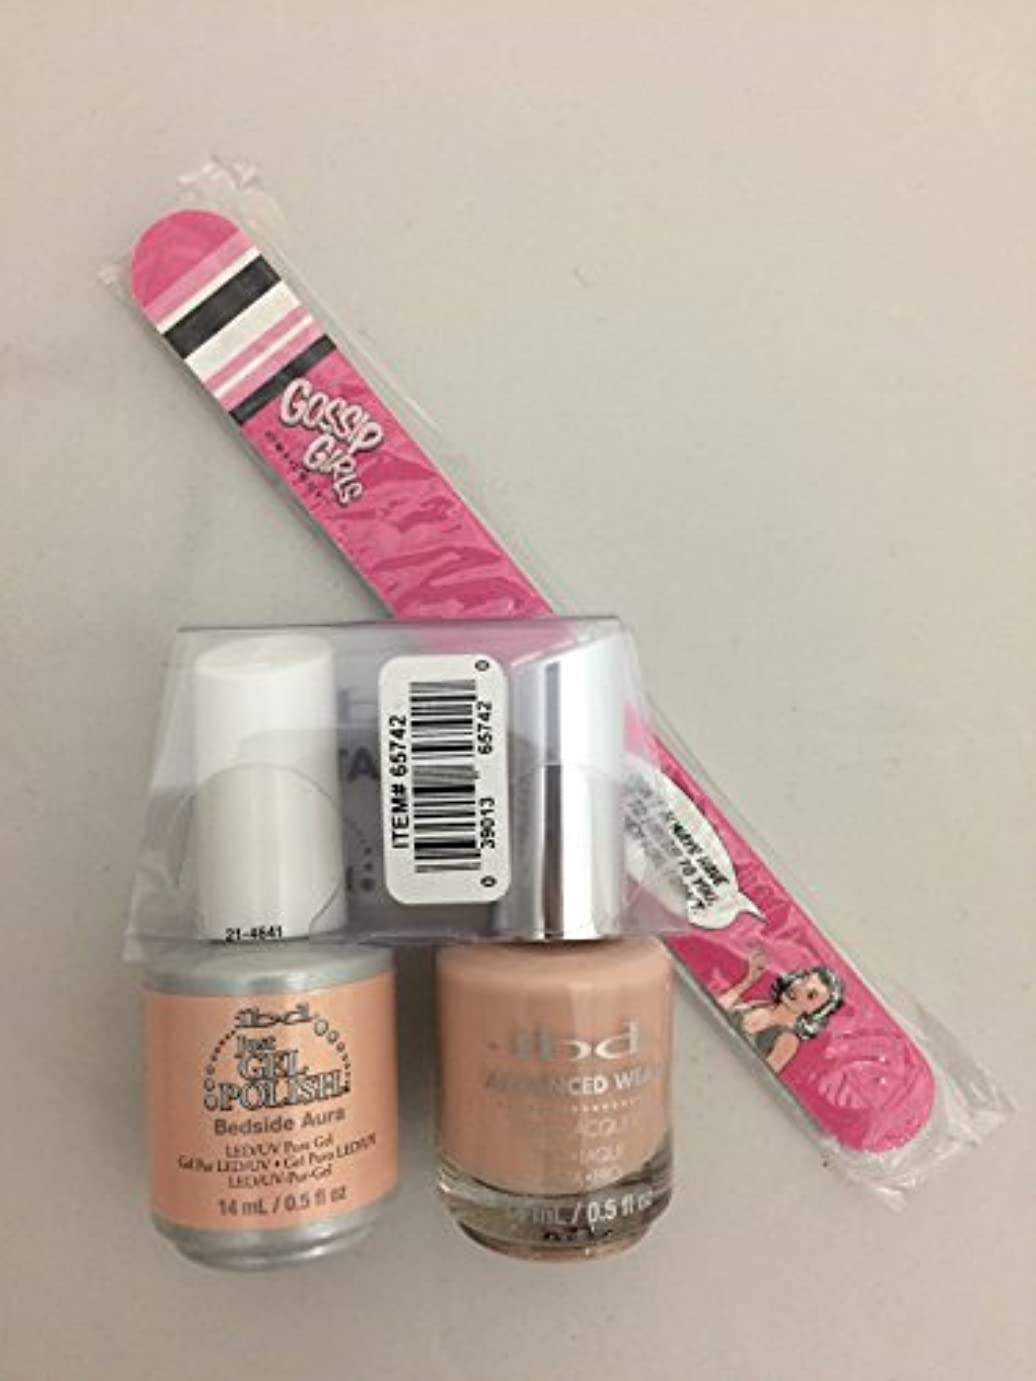 ibd - It's A Match -Duo Pack- Nude Collection - Bedside Aura - 14 mL / 0.5 oz Each